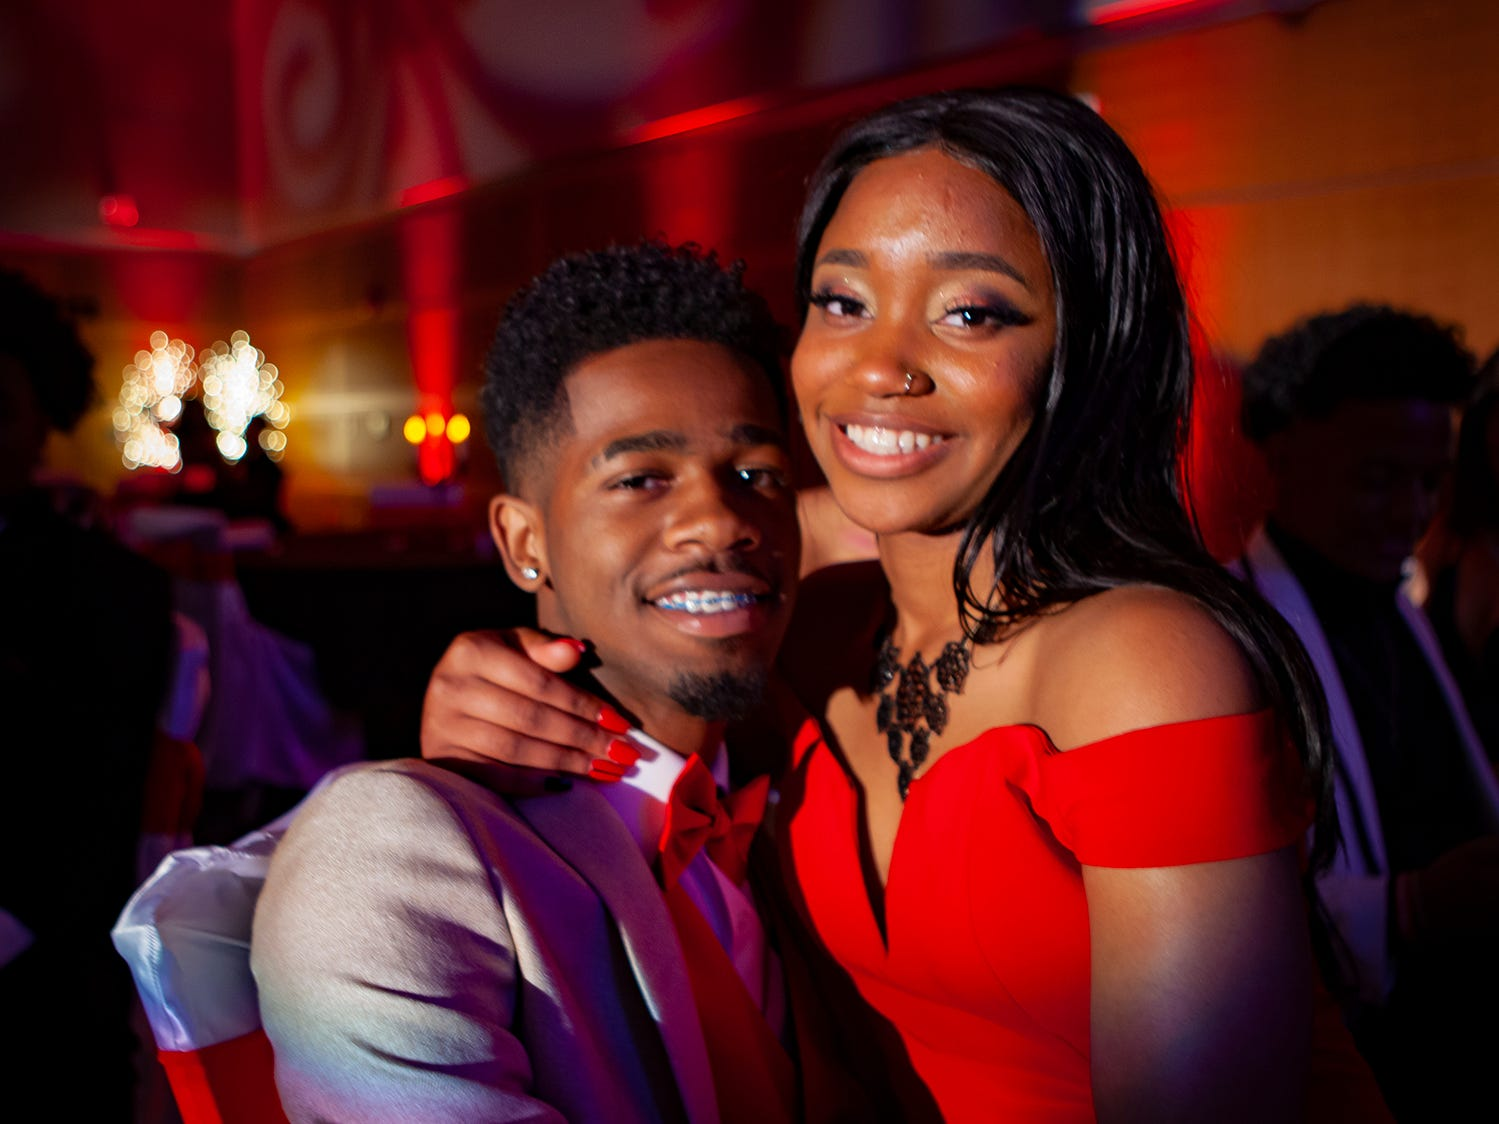 Johnny Nelson and Quay Hill at Riverdale's prom, held Saturday, April 27, 2019 at MTSU's Student Union Building.